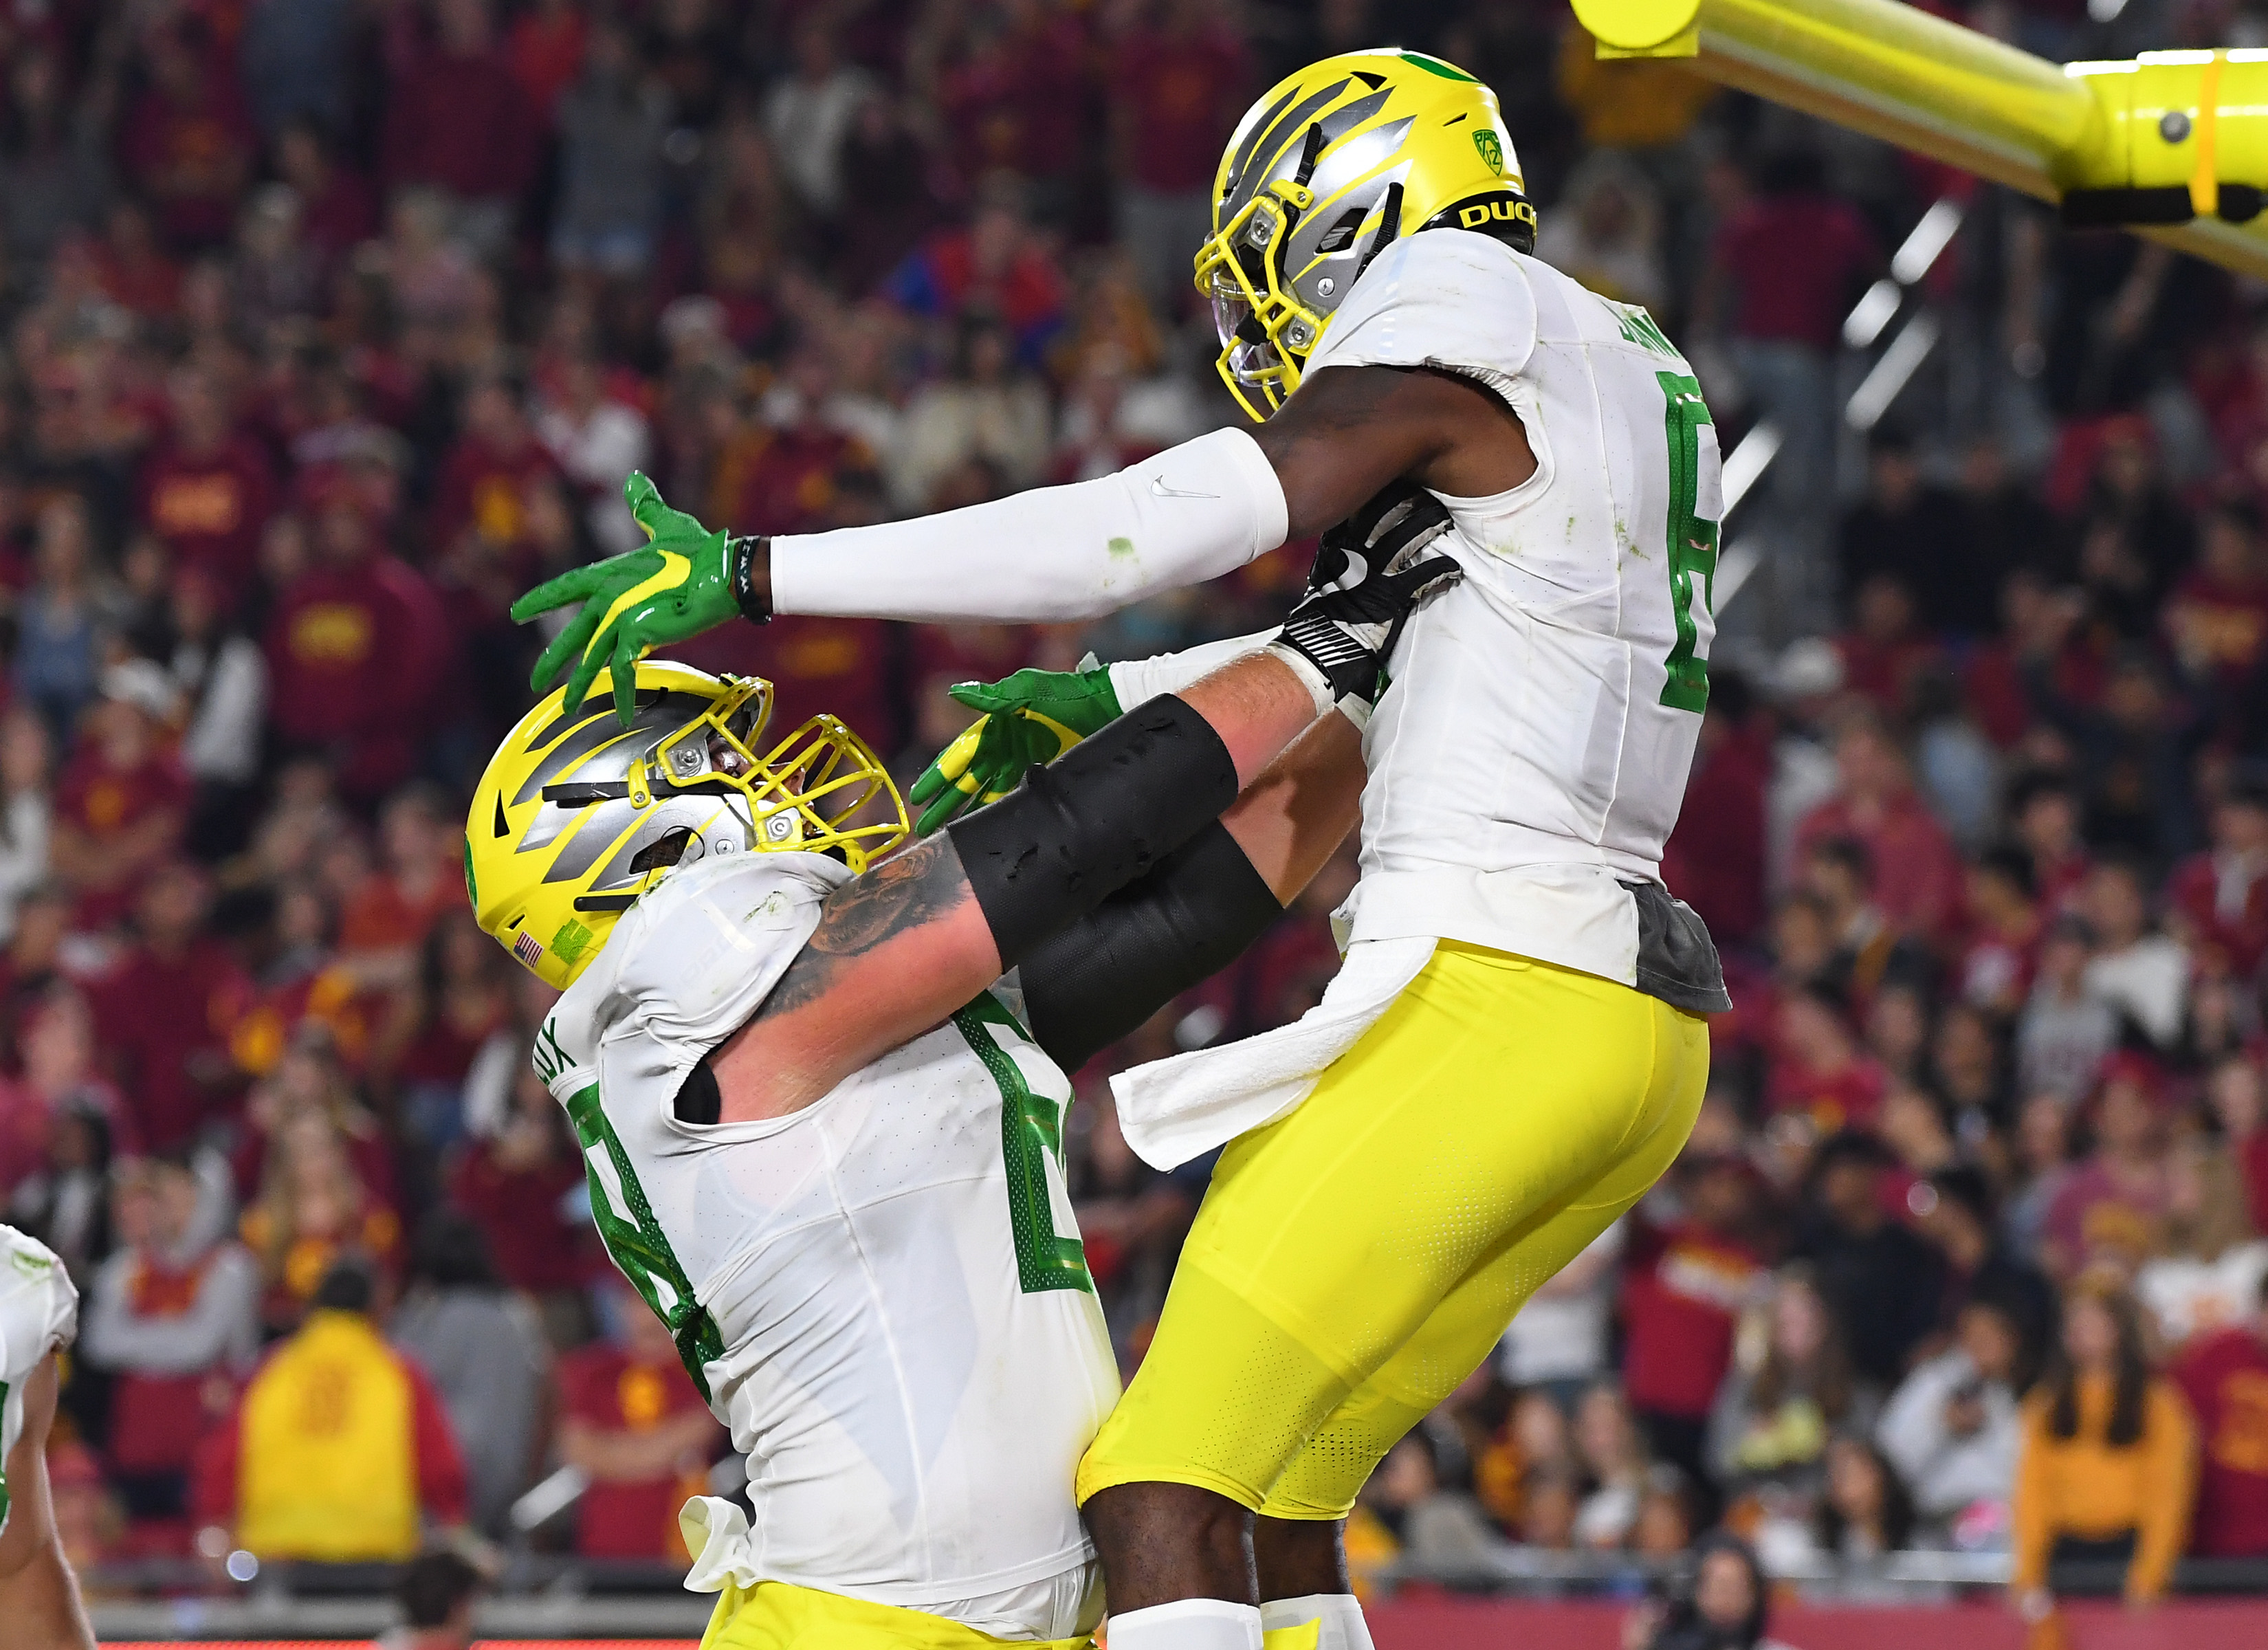 oregon-ducks-addicated-quack-sb-nation-interview-preview-analysis-insight-2019